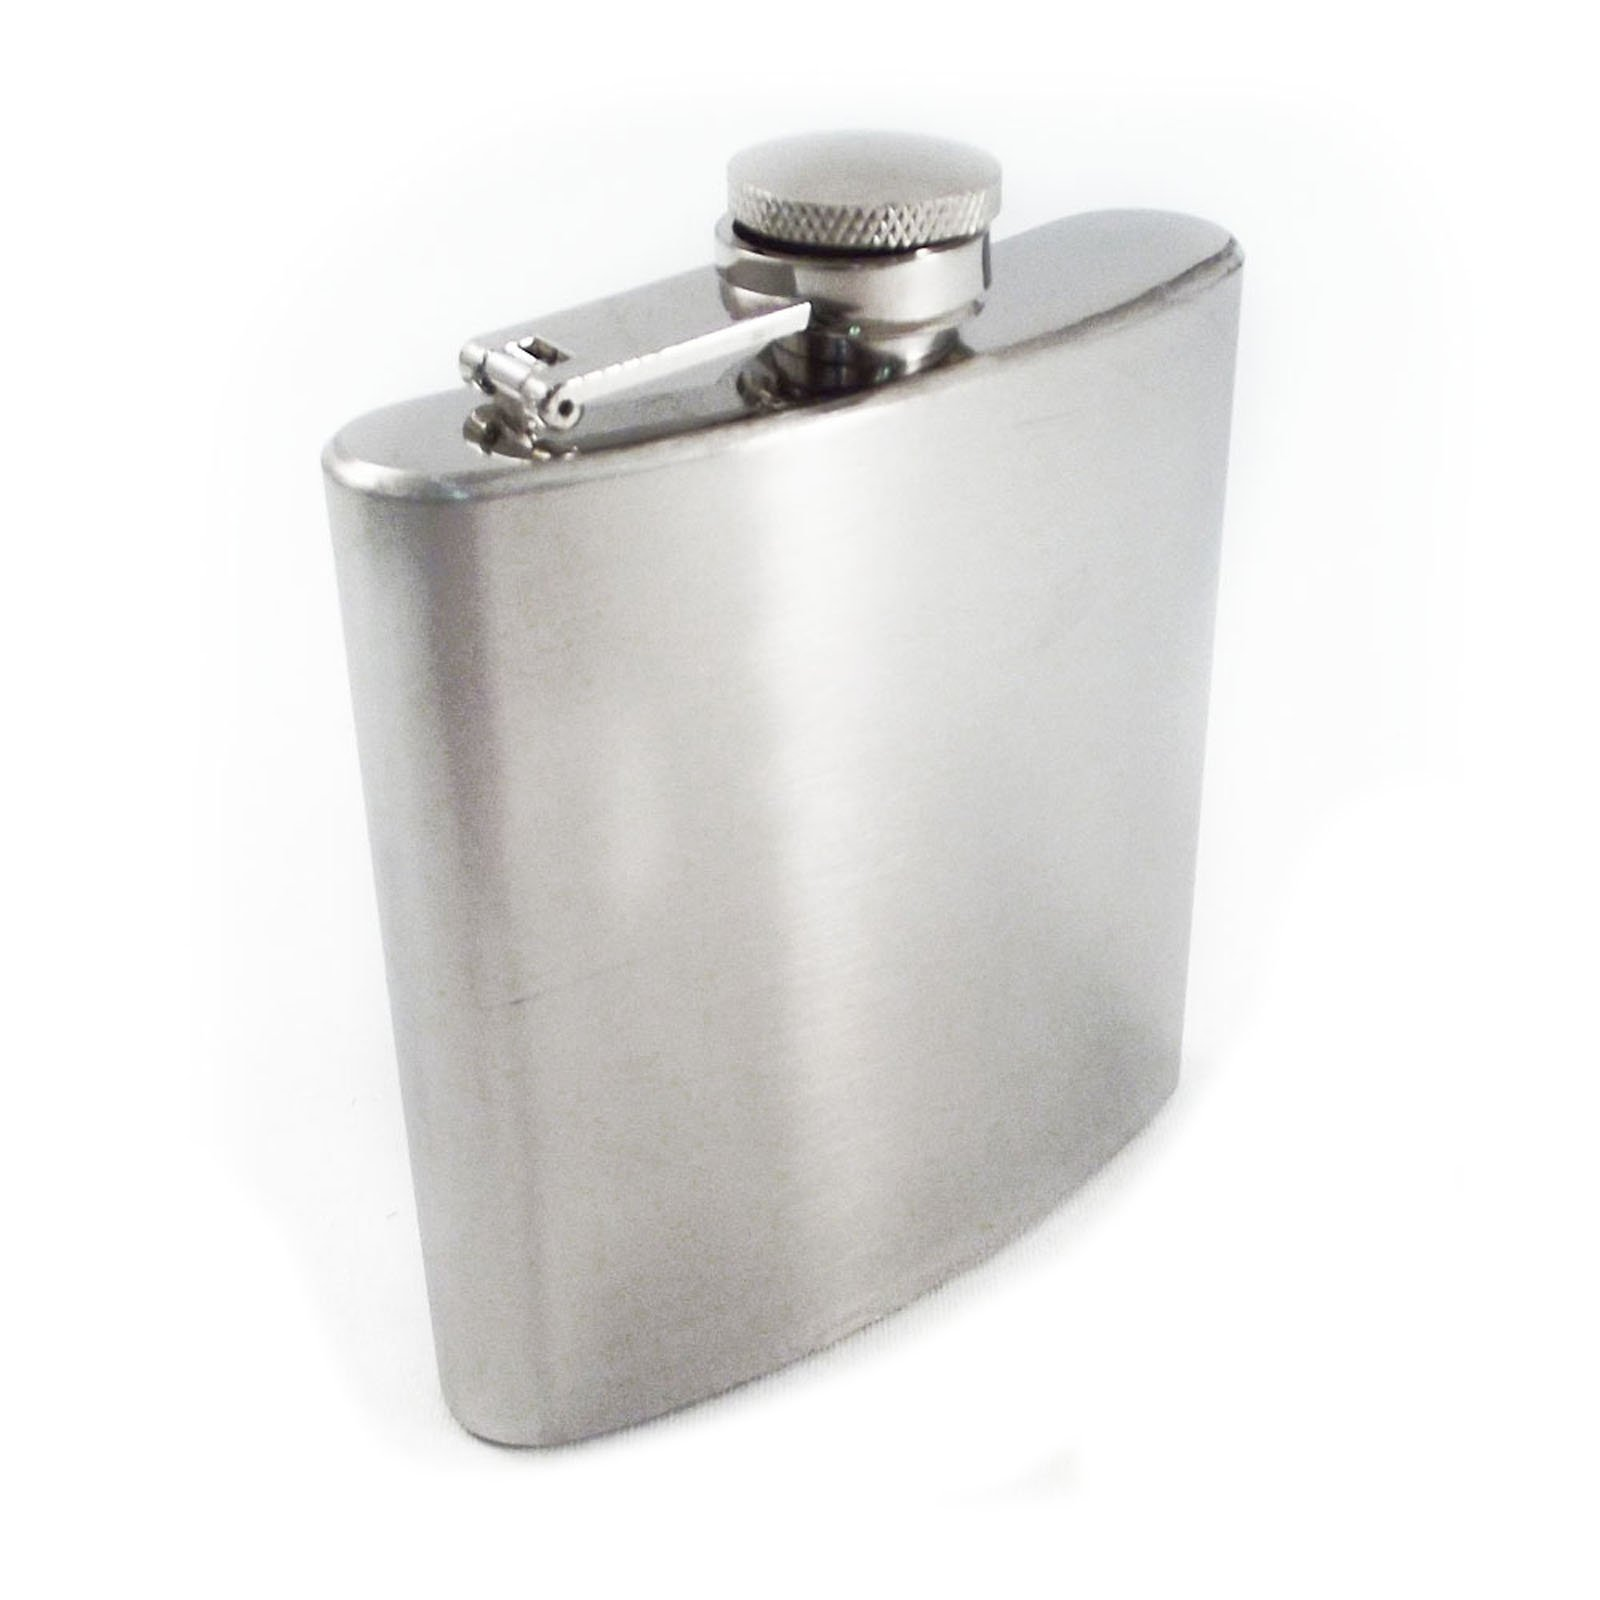 Hip Flask Stainless Steel 6oz Alcohol Concealed Drinkware Walmart Canada